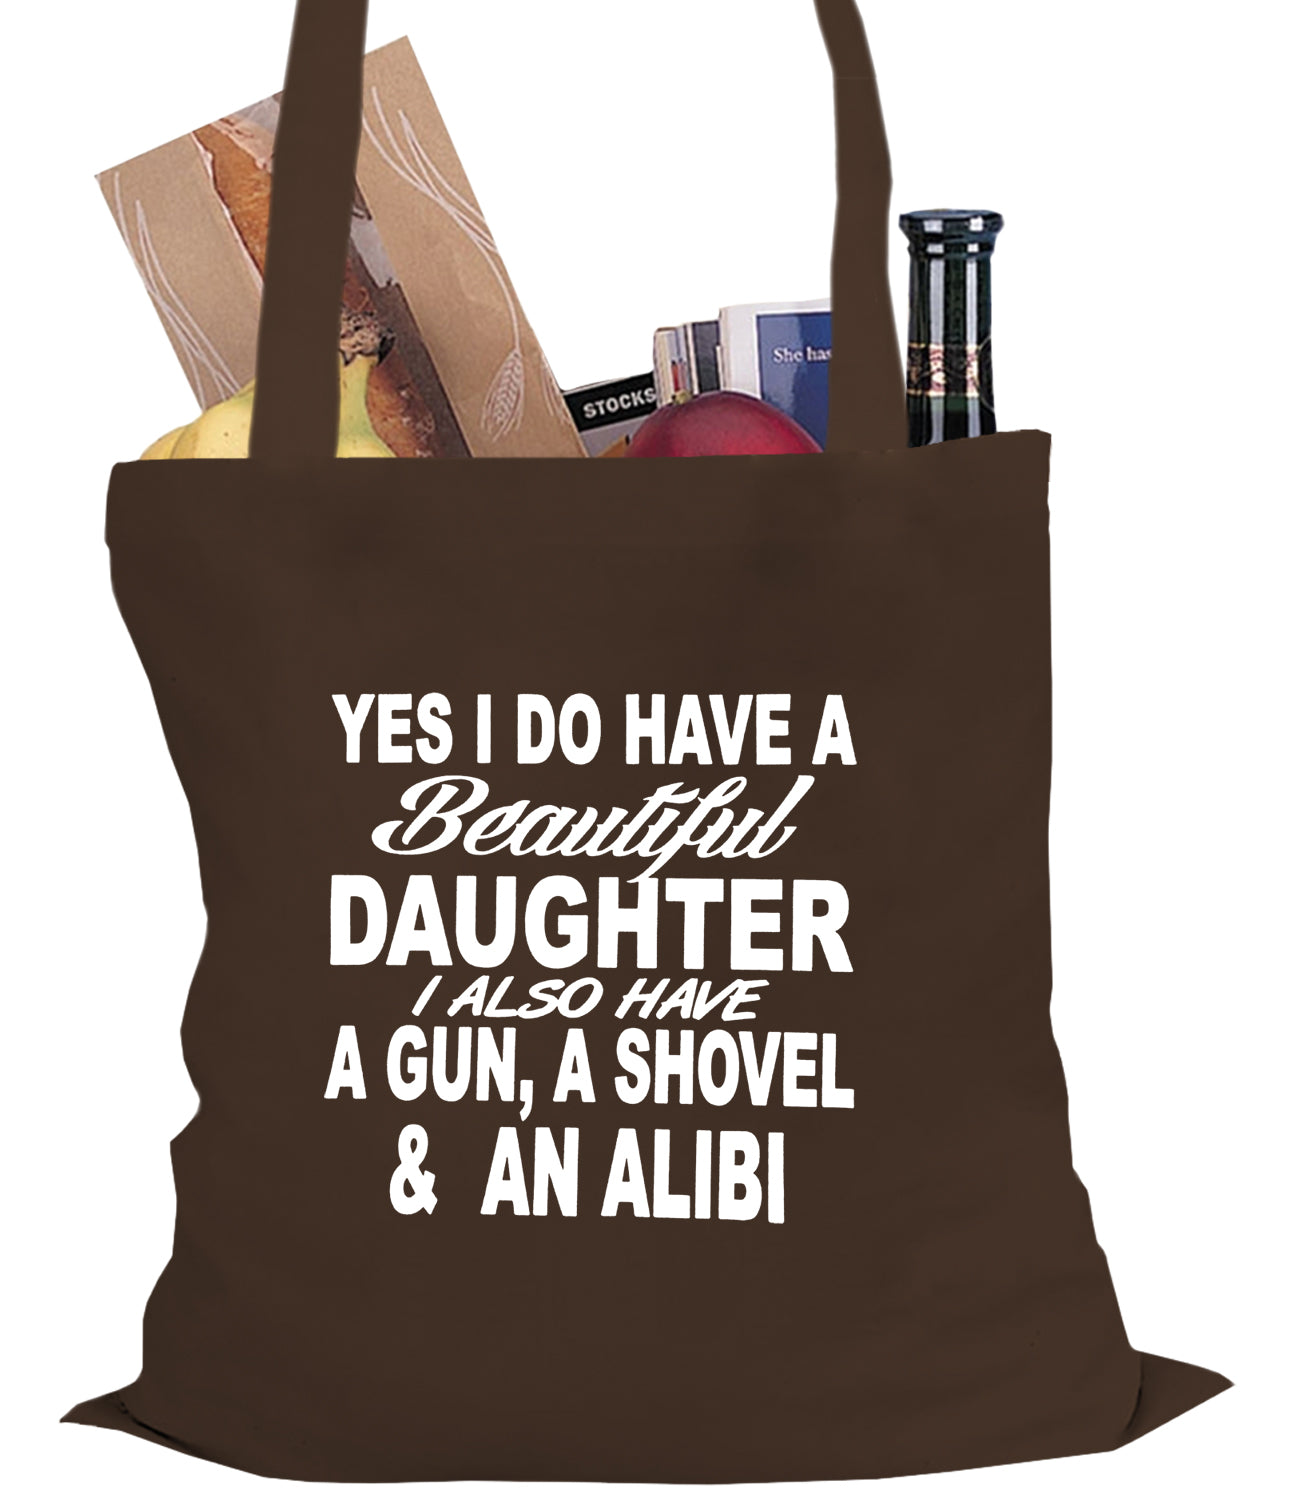 Yes, I Have Beautiful Daughter, A Gun, and An Alibi Tote Bag